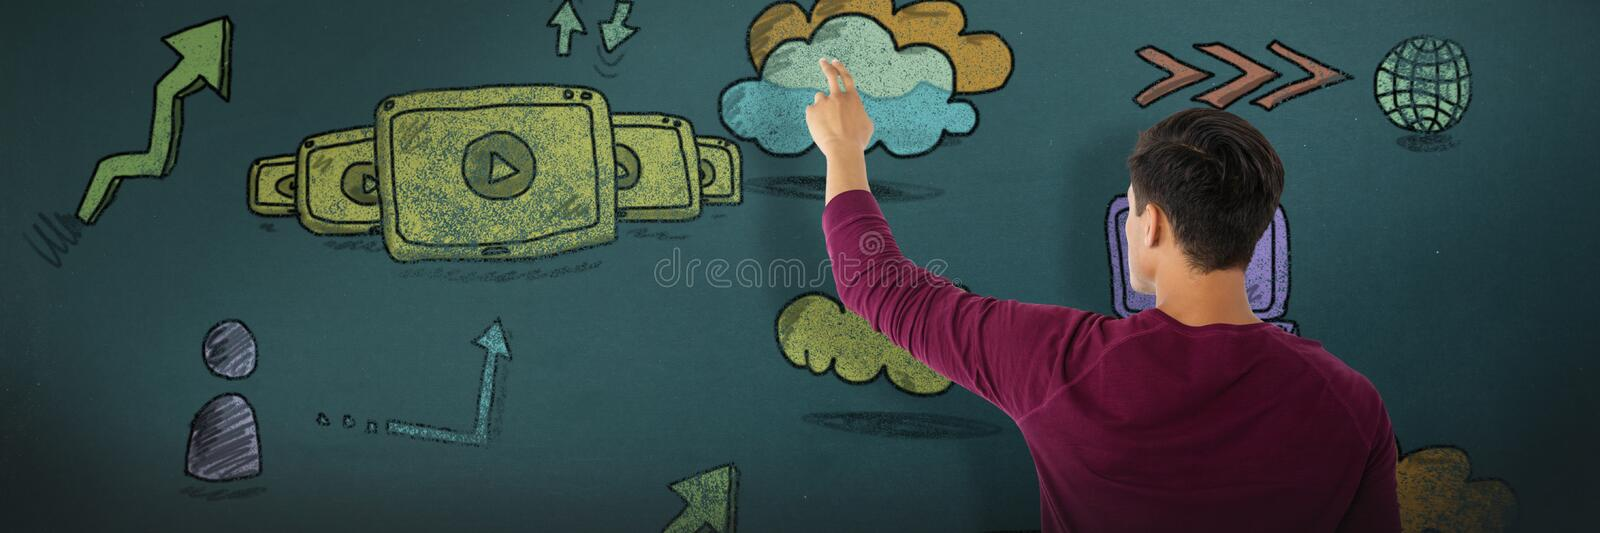 Composite image of businessman touching invisible imaginary screen. Businessman touching invisible imaginary screen against network royalty free stock photography